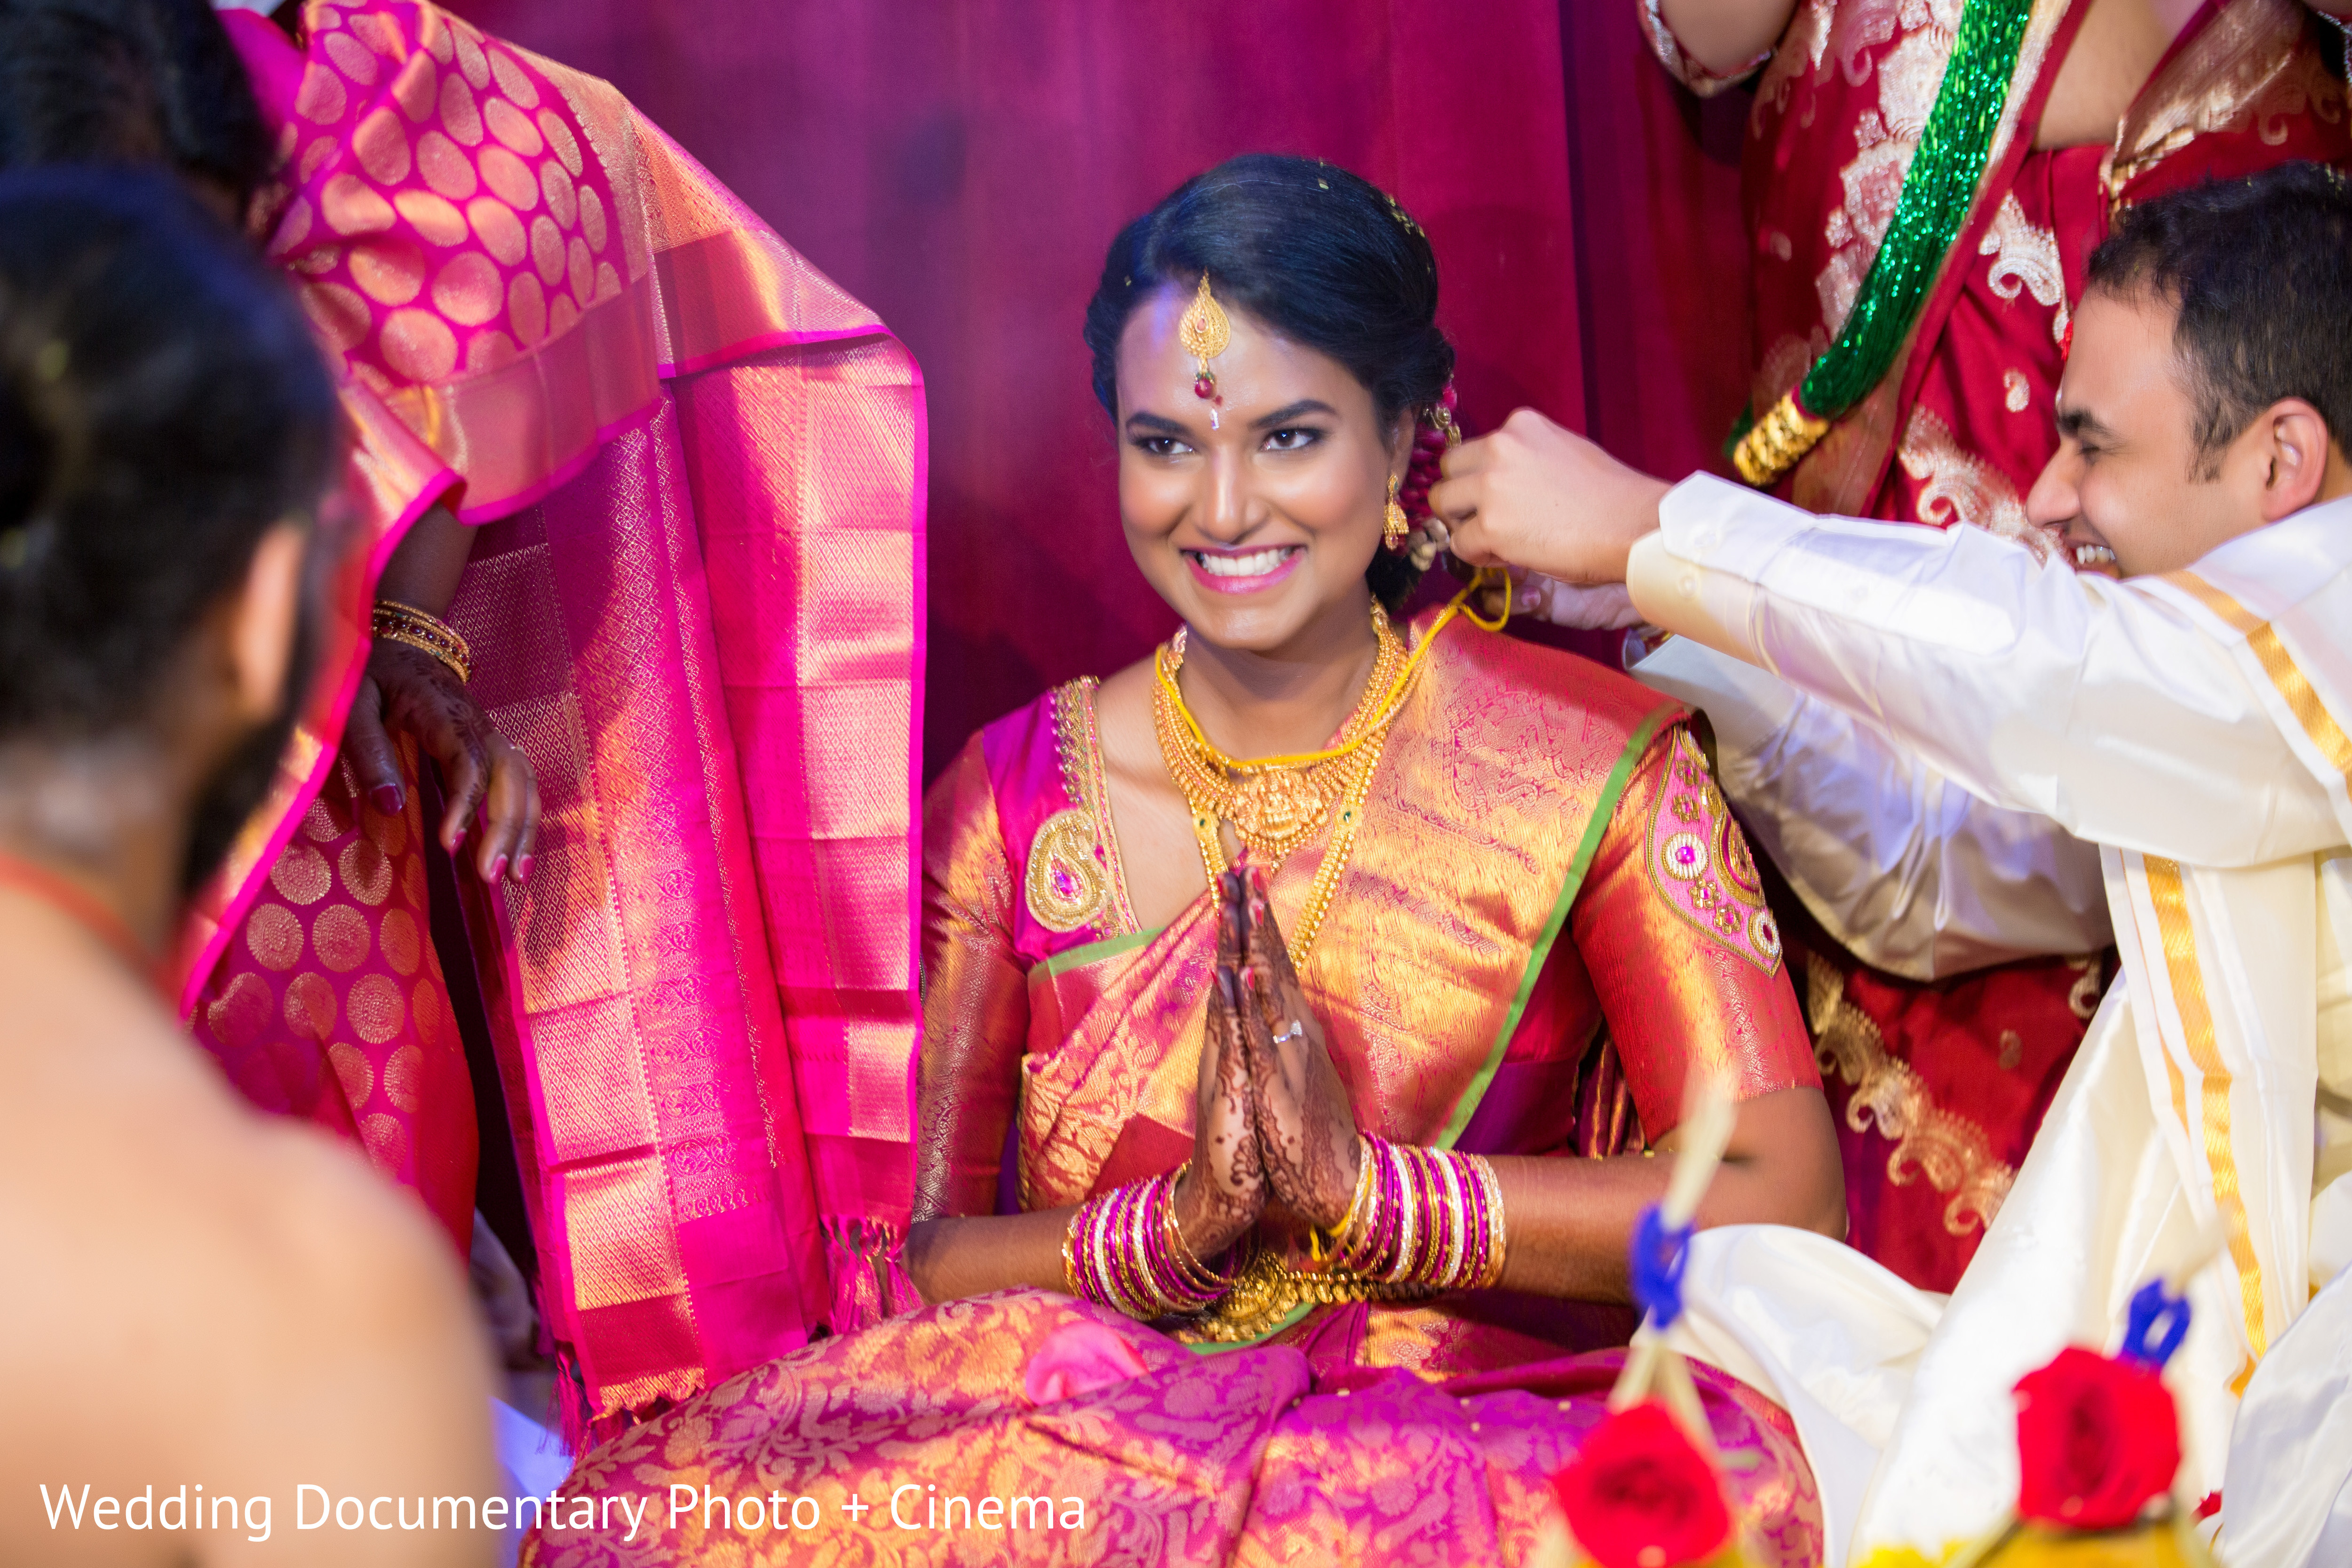 Livermore, CA South Indian Wedding by Wedding Documentary Photo + Cinema